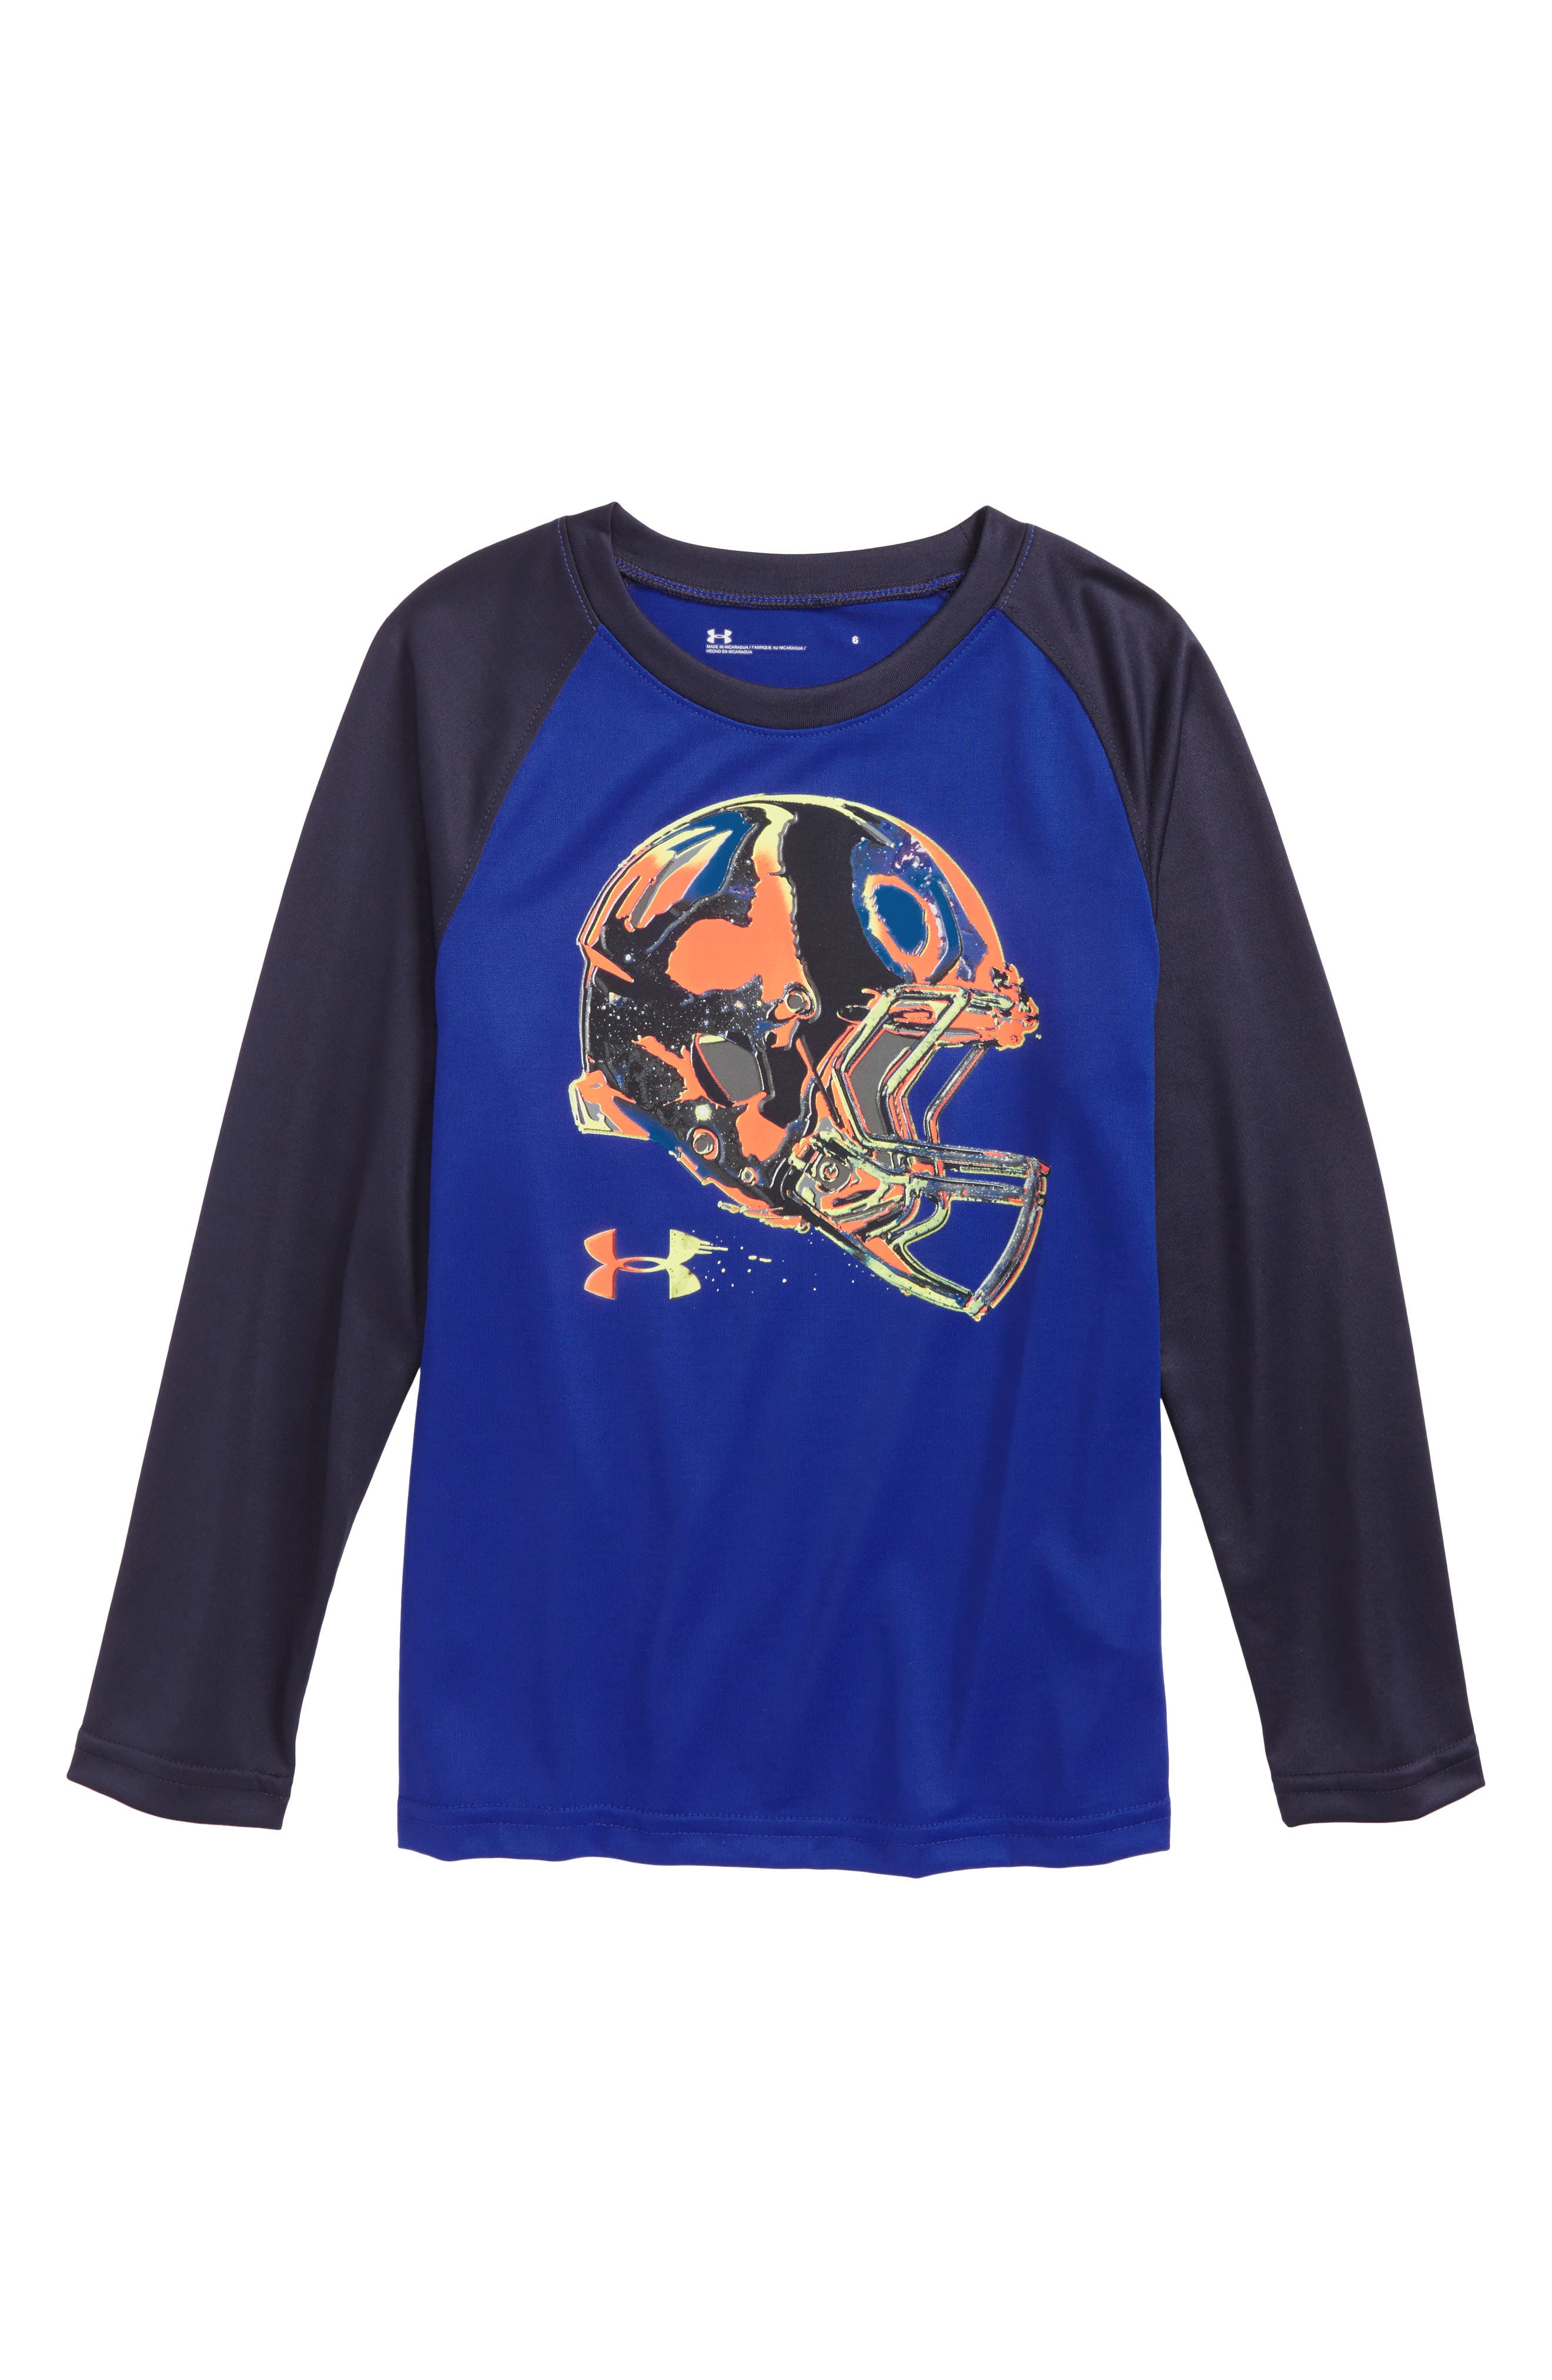 Accelerate Raglan T-Shirt,                             Main thumbnail 1, color,                             450